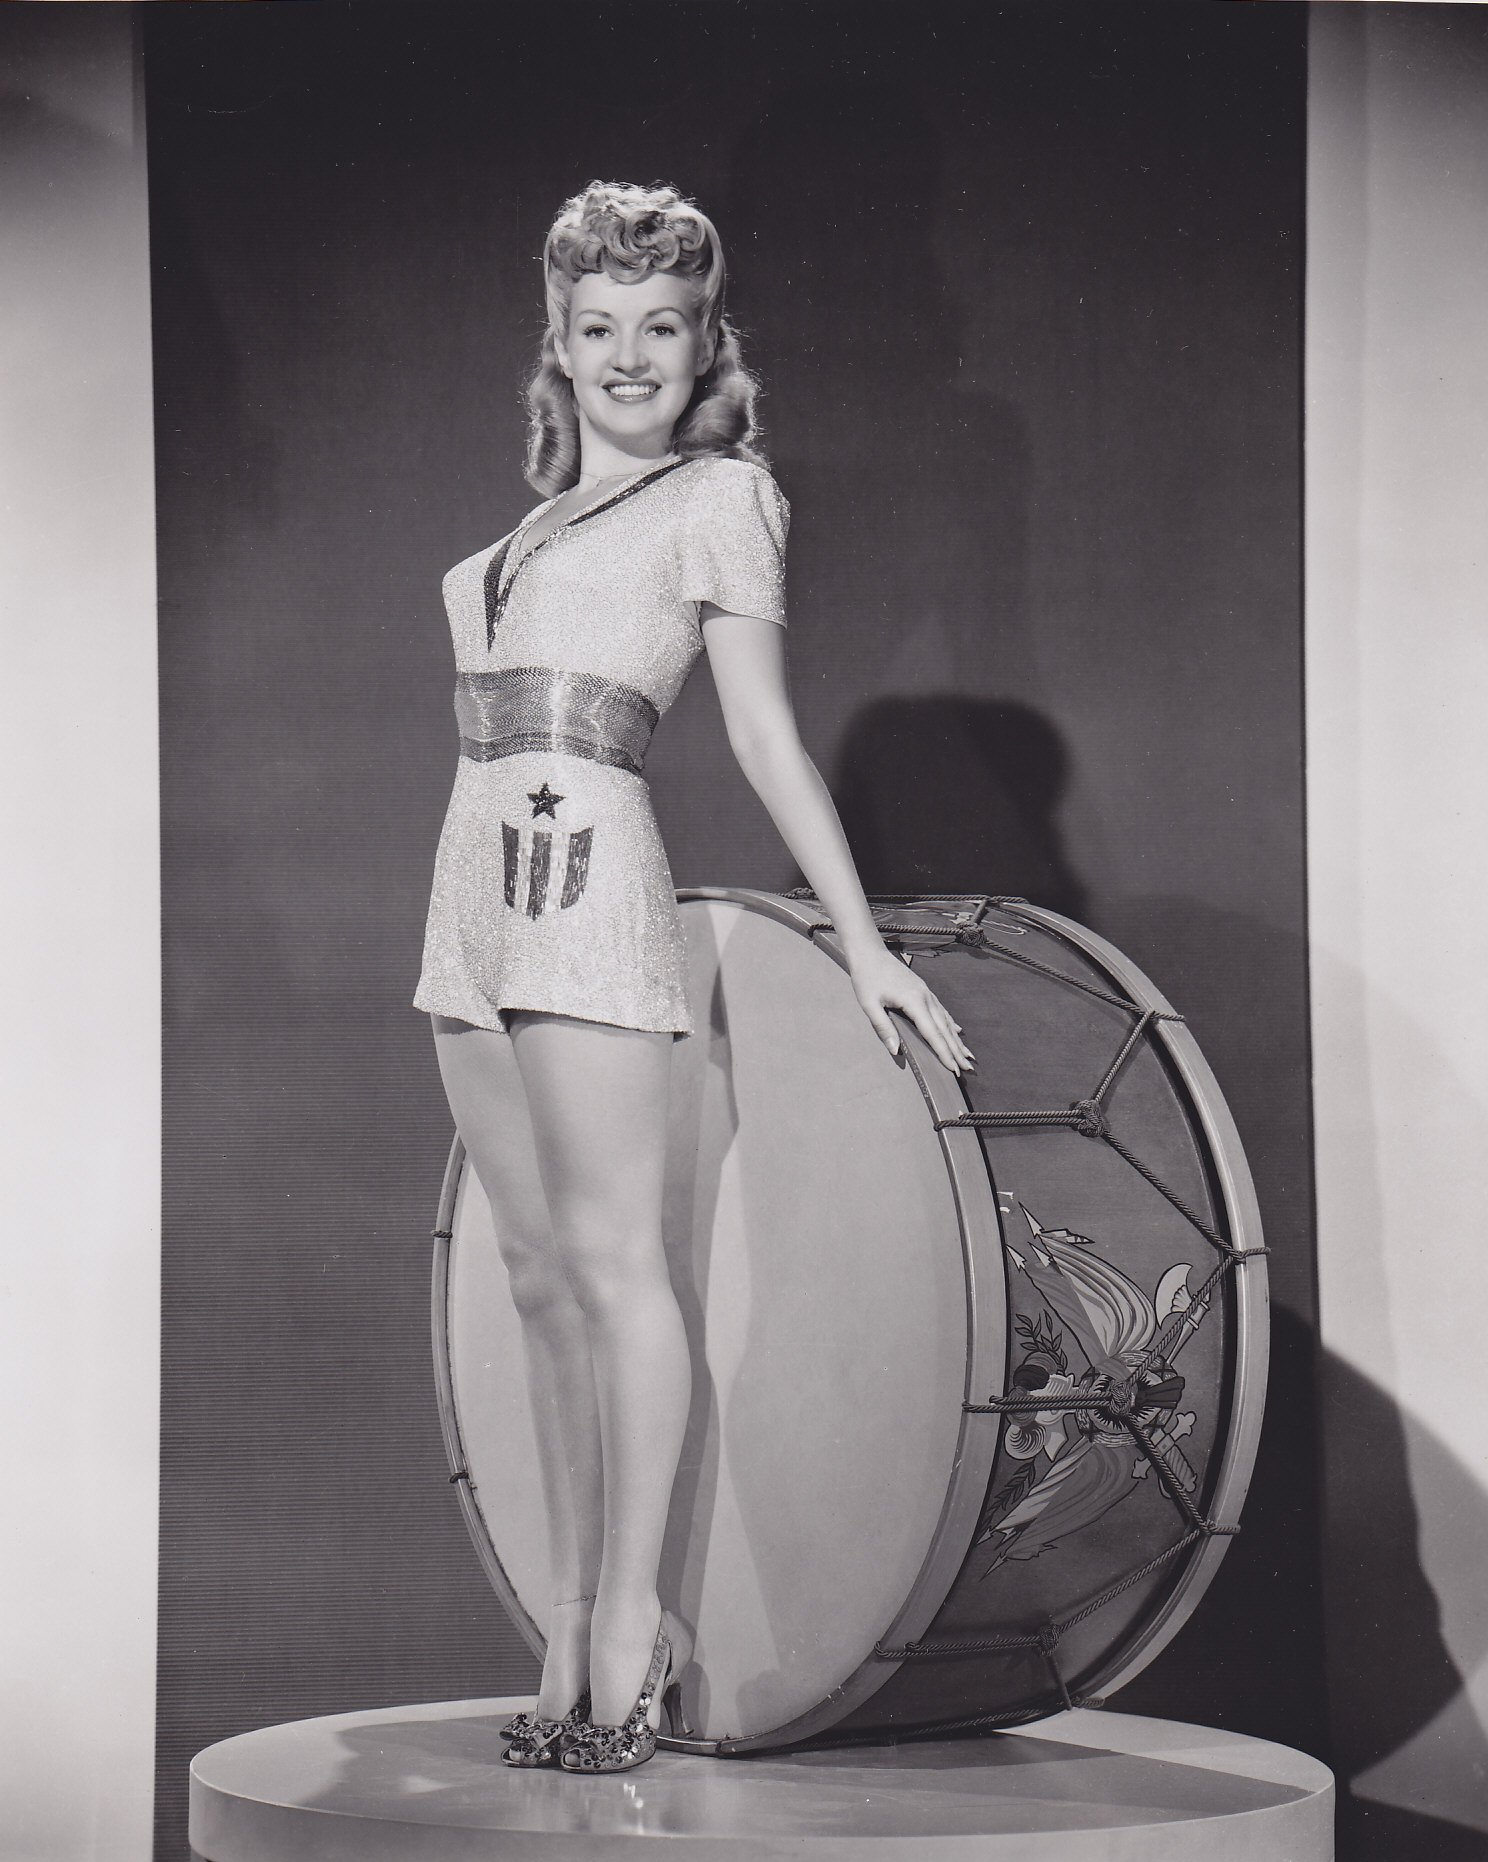 Image Source: Wikimedia Commons|Pin-up photo of Betty Grable for the Jun. 25, 1943 issue of Yank, the Army Weekly, a weekly U.S. Army magazine fully staffed by enlisted men.